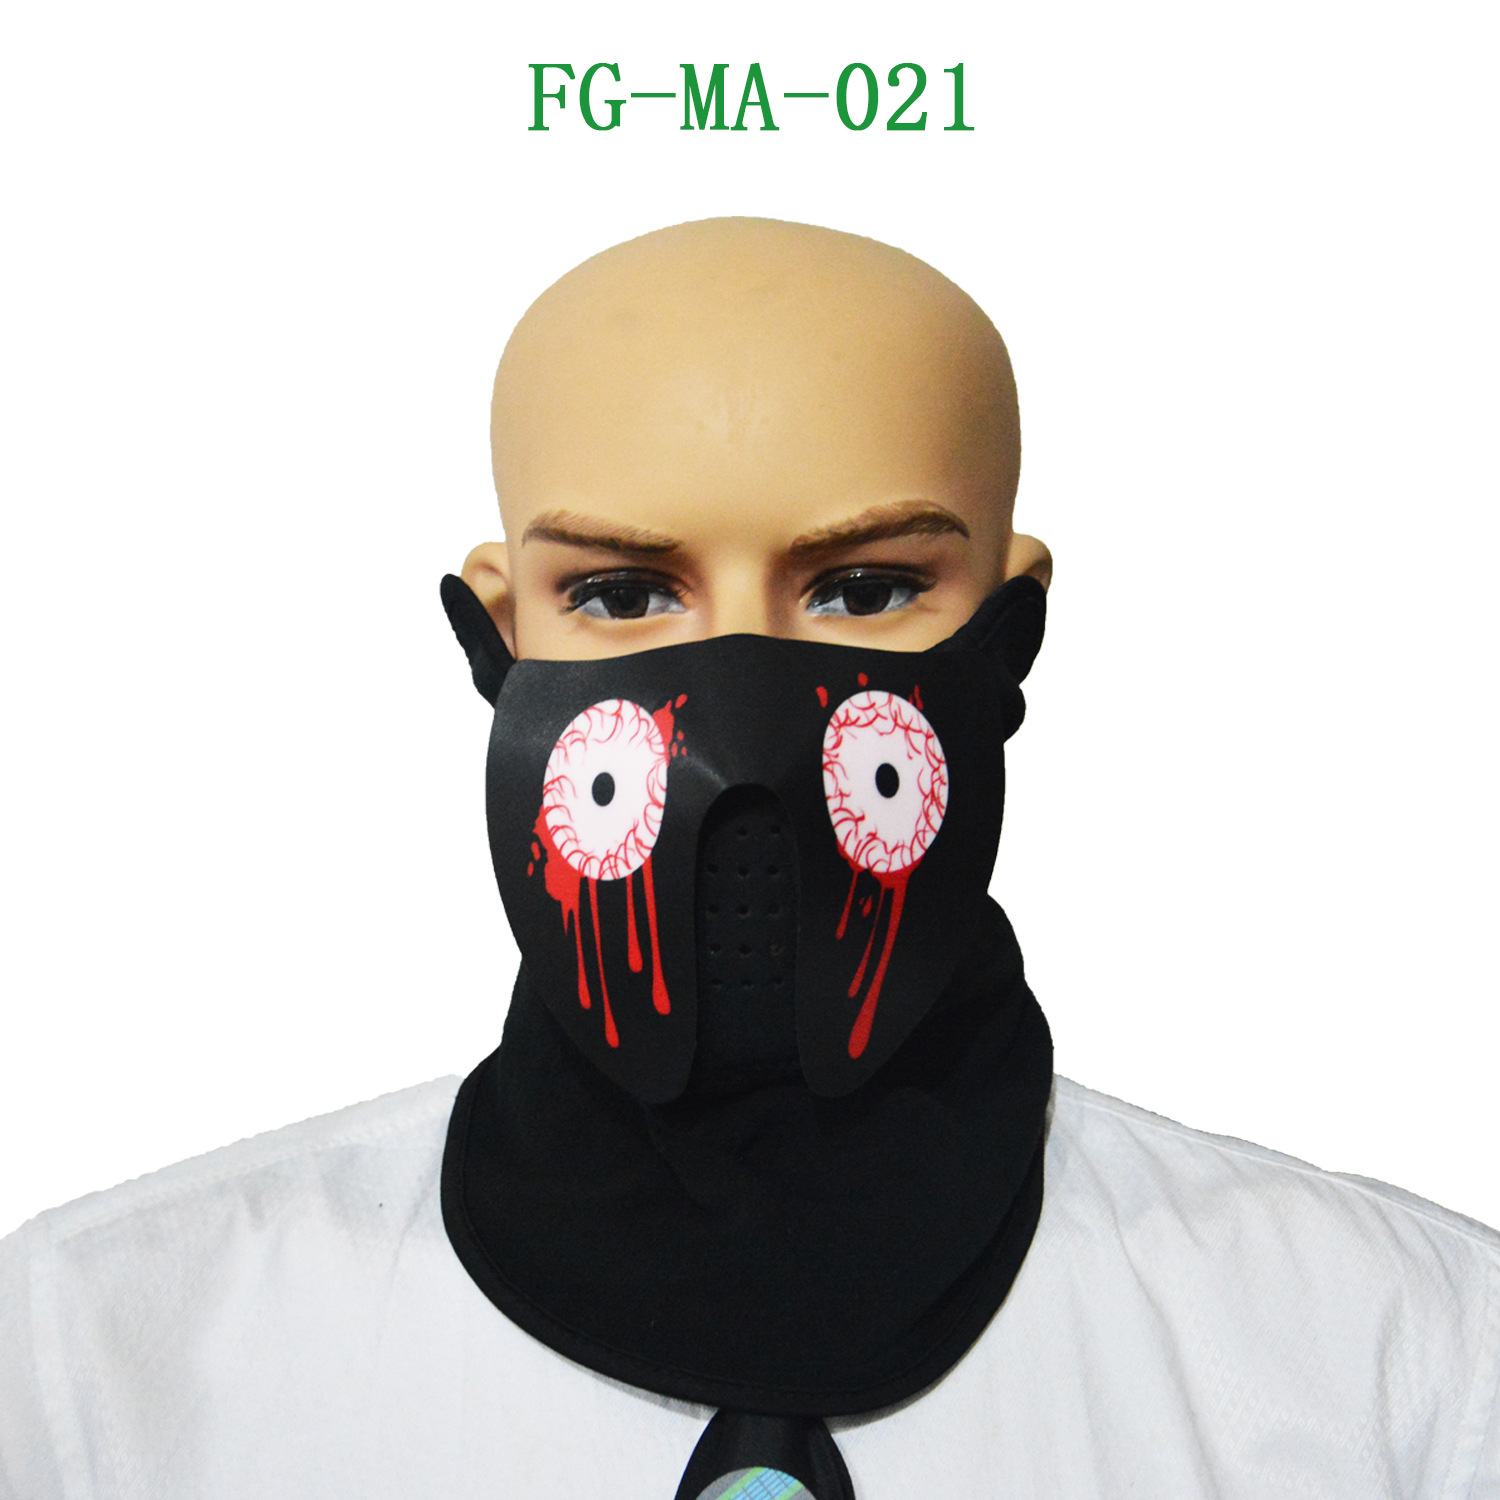 Modest Cold Light Mask Voice Control Light Latest Hot Products El Light Music Flash Gift